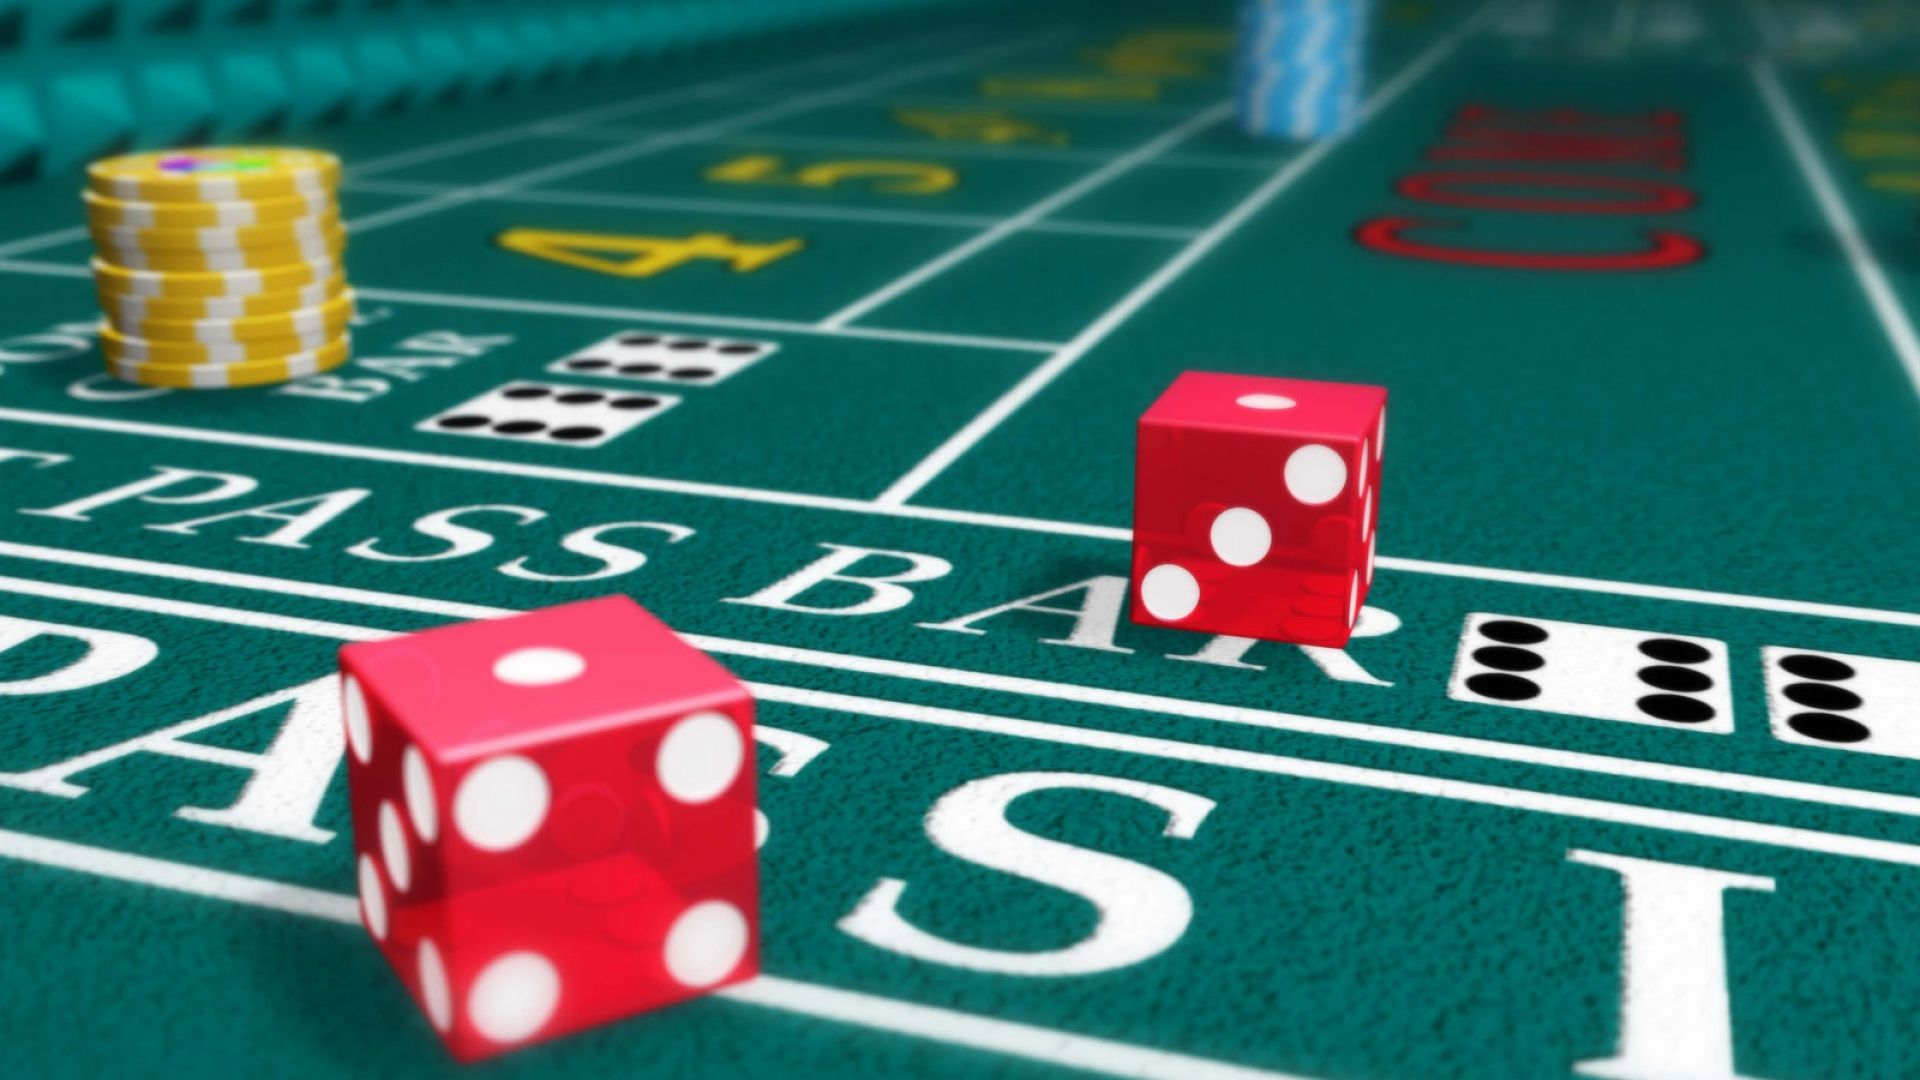 Types of bets in roulette games